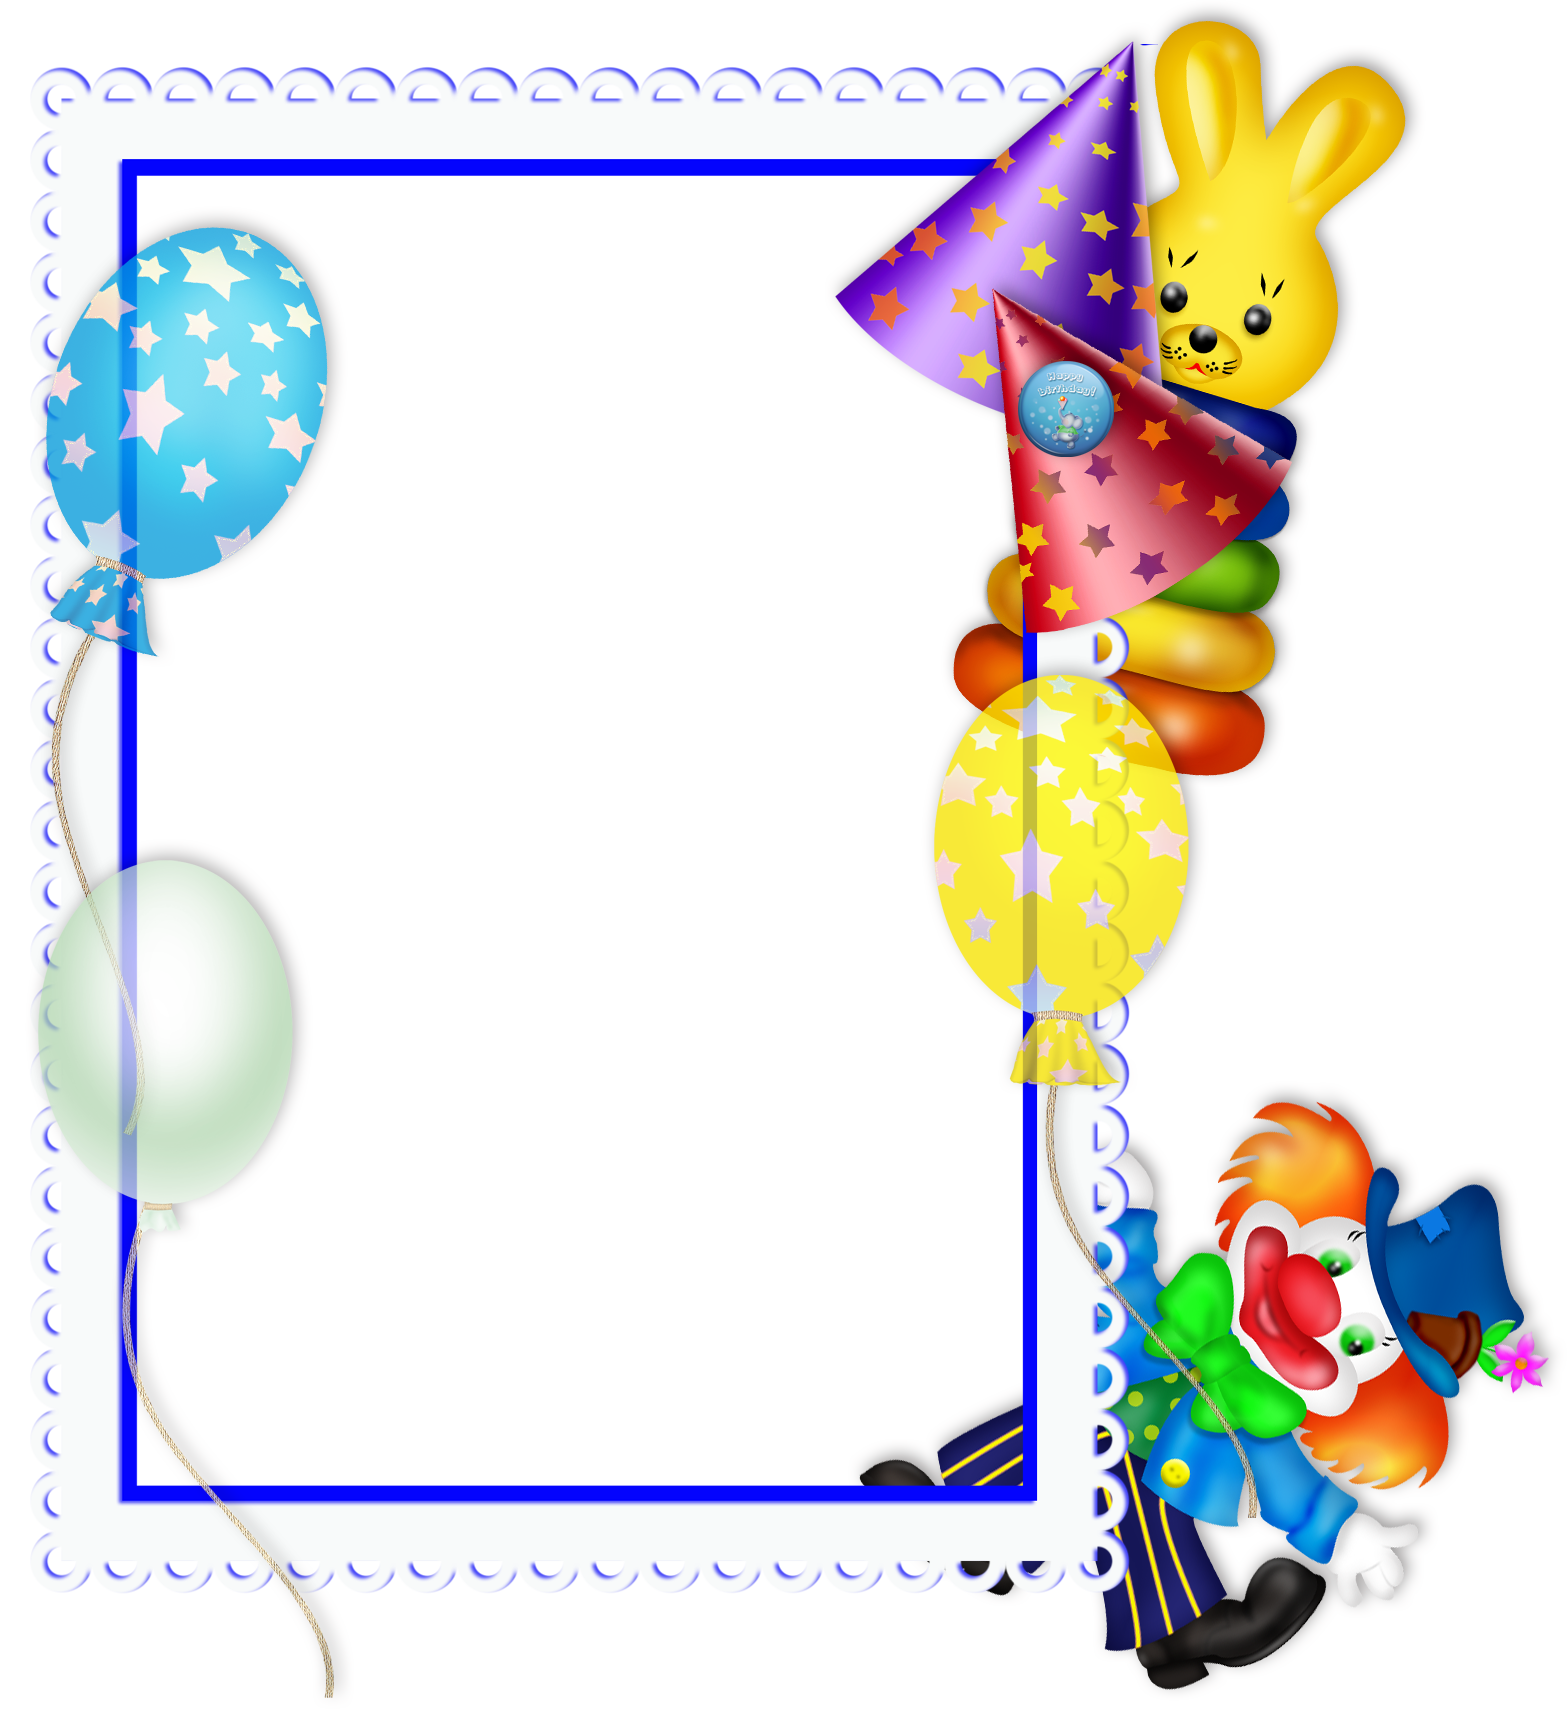 Happy Birthday Transparent PNG Party Frame | Party frame